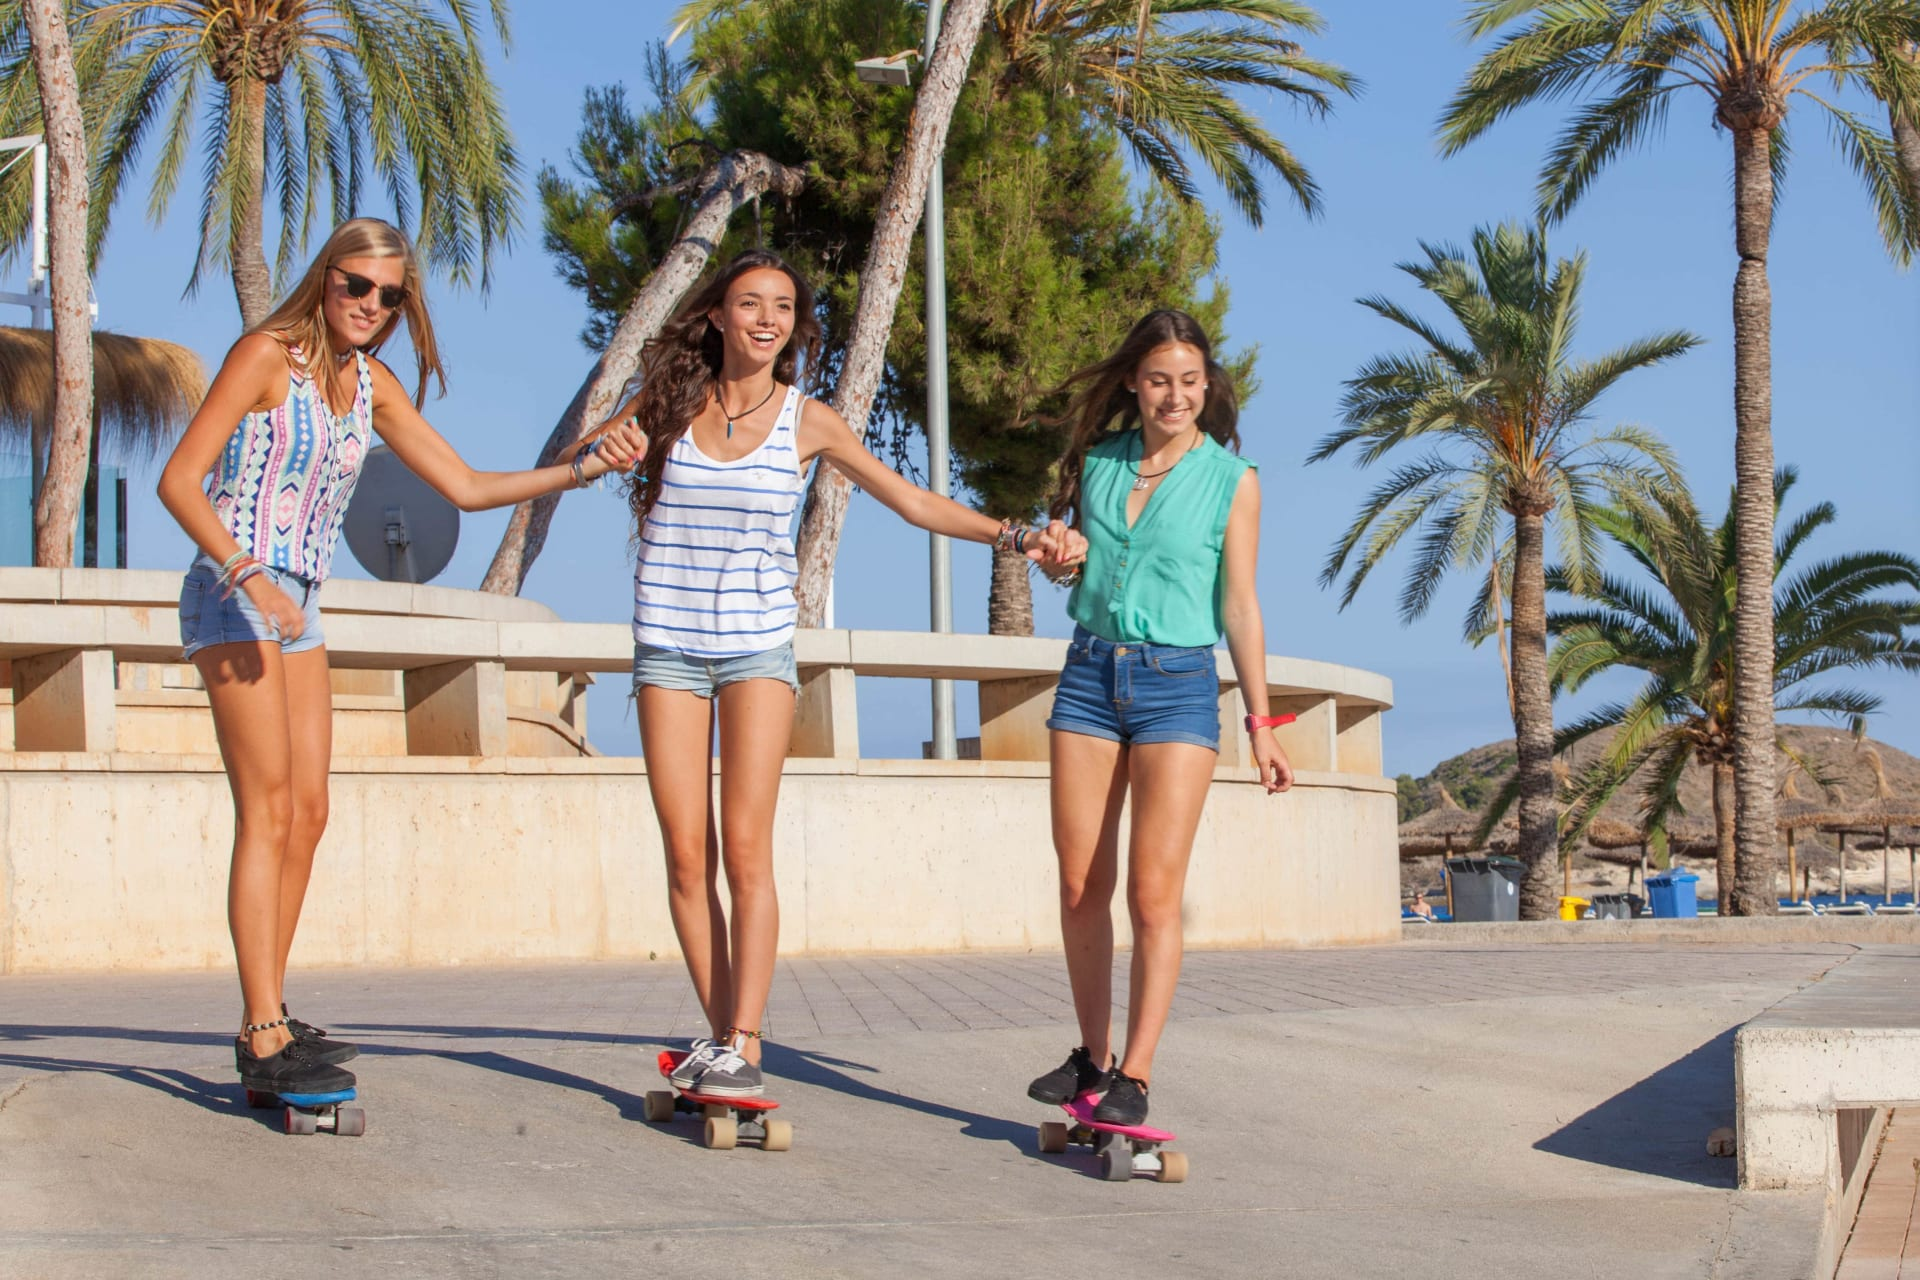 Three girls on skateboards